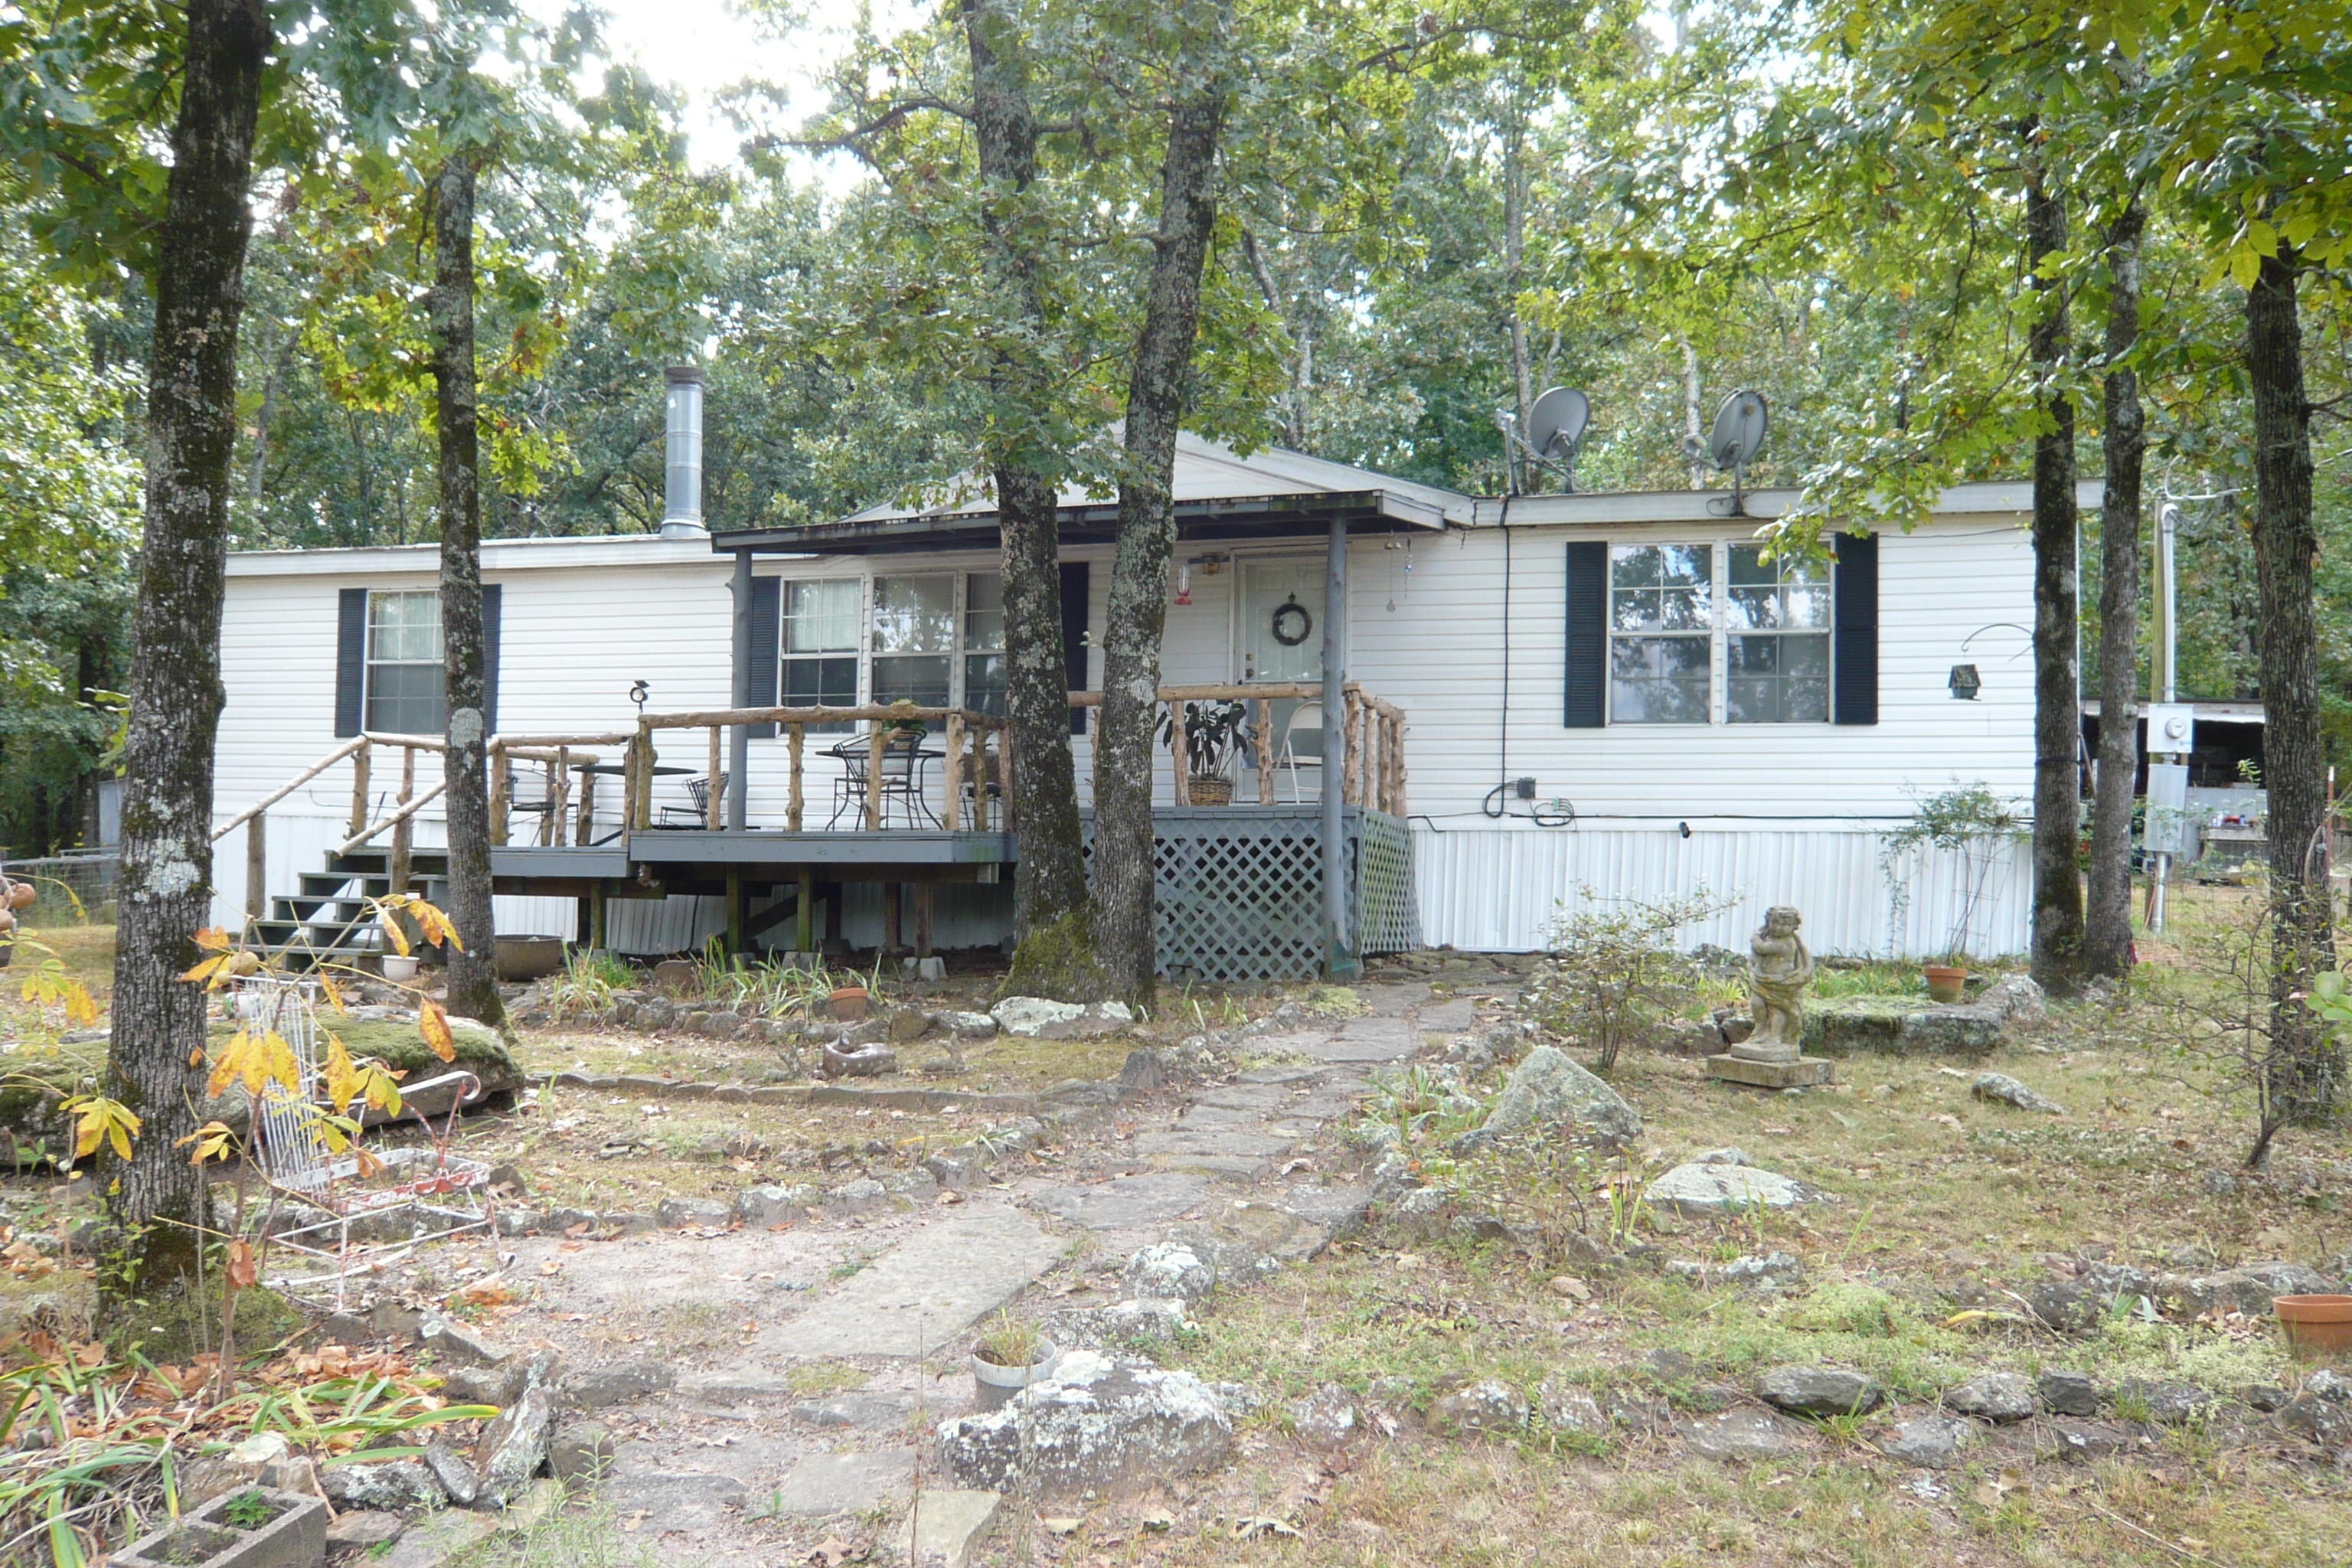 14519 Old Turner Rd., Mulberry, Arkansas 72947